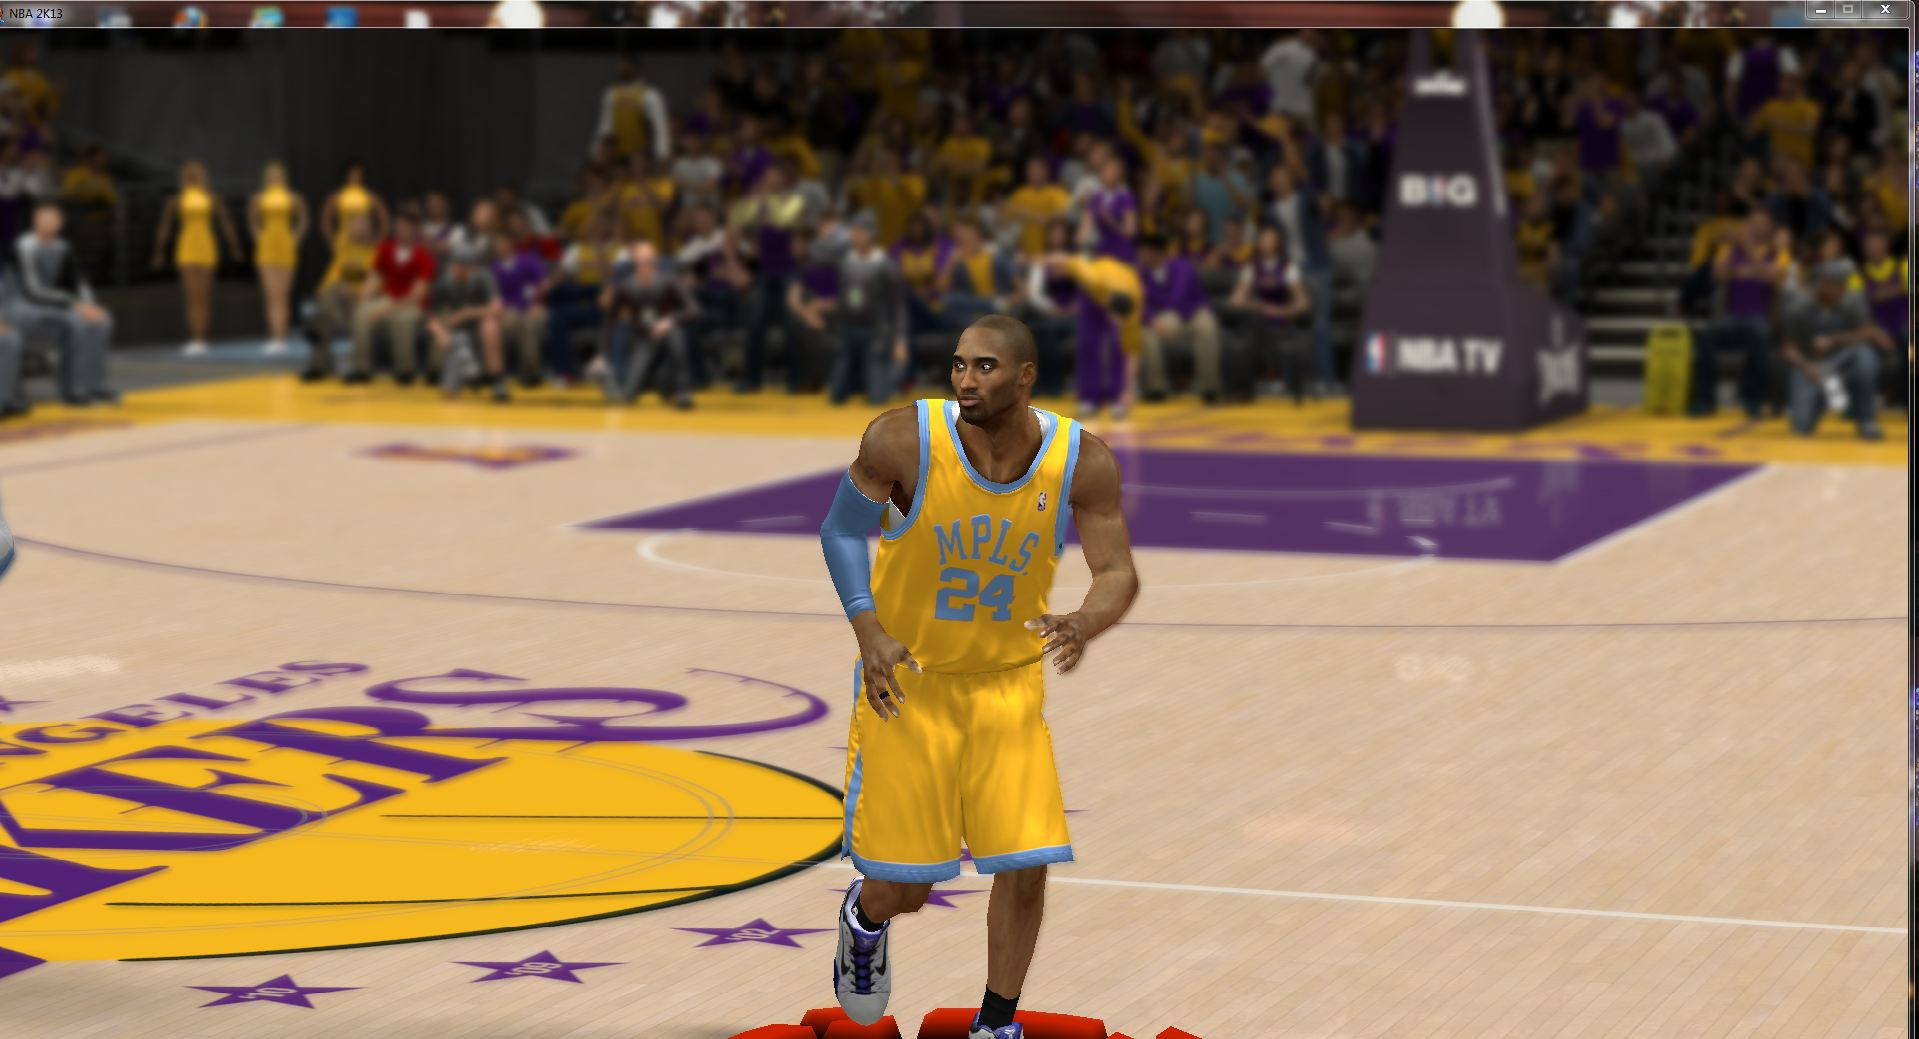 Los Angeles Lakers Retro (Minneapolis) Home Jersey